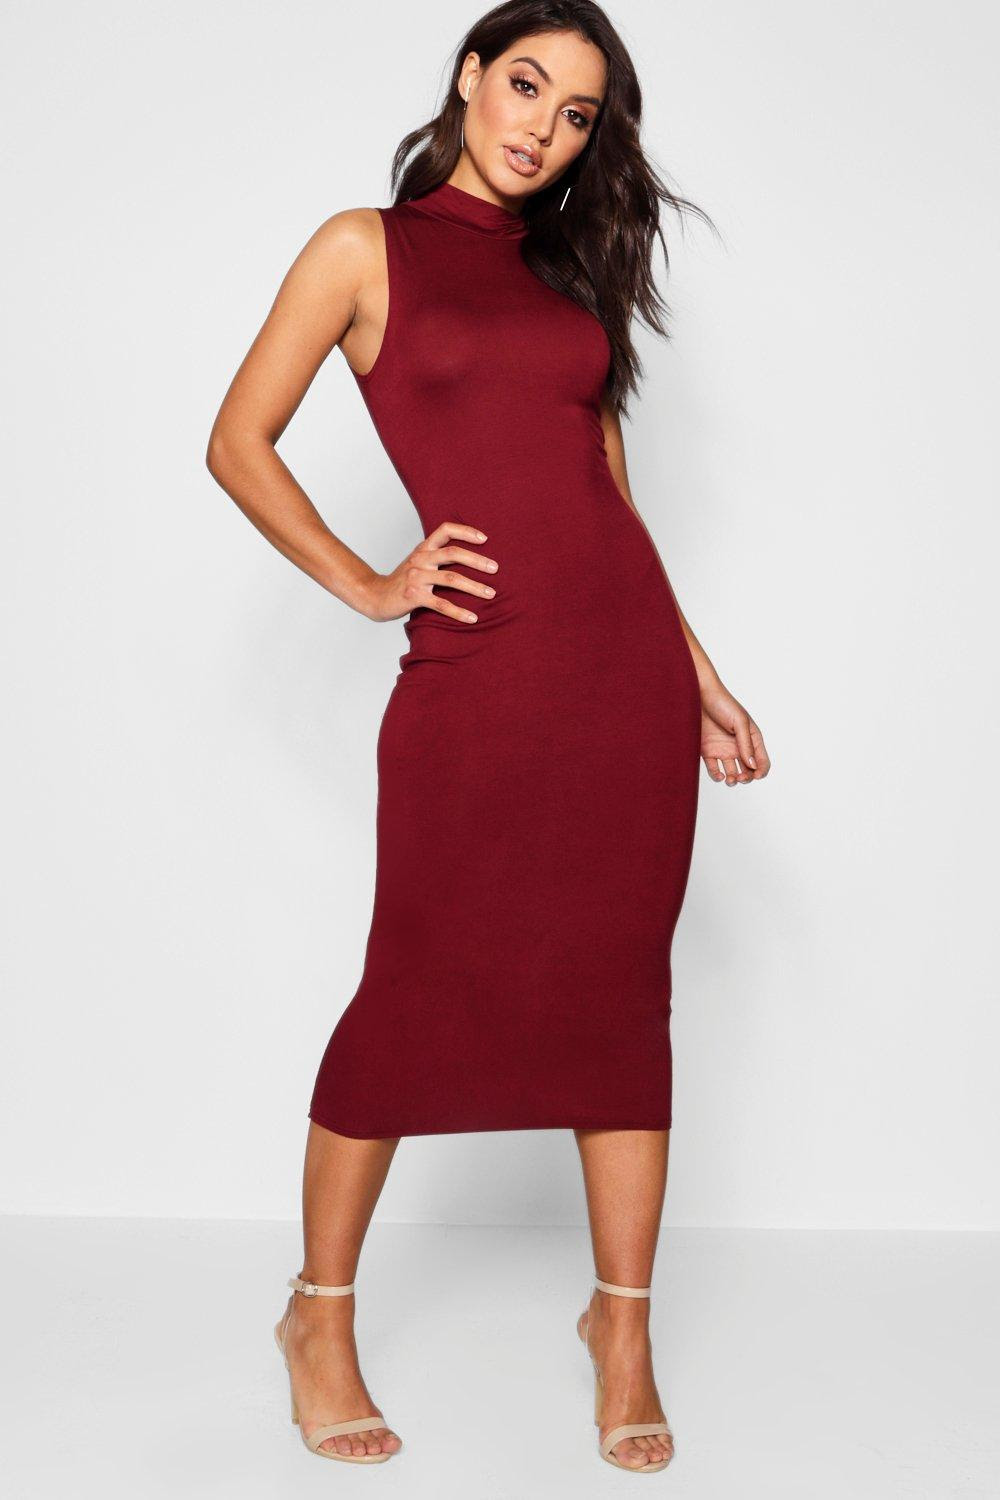 Online shopping world the what is in bodycon a dress